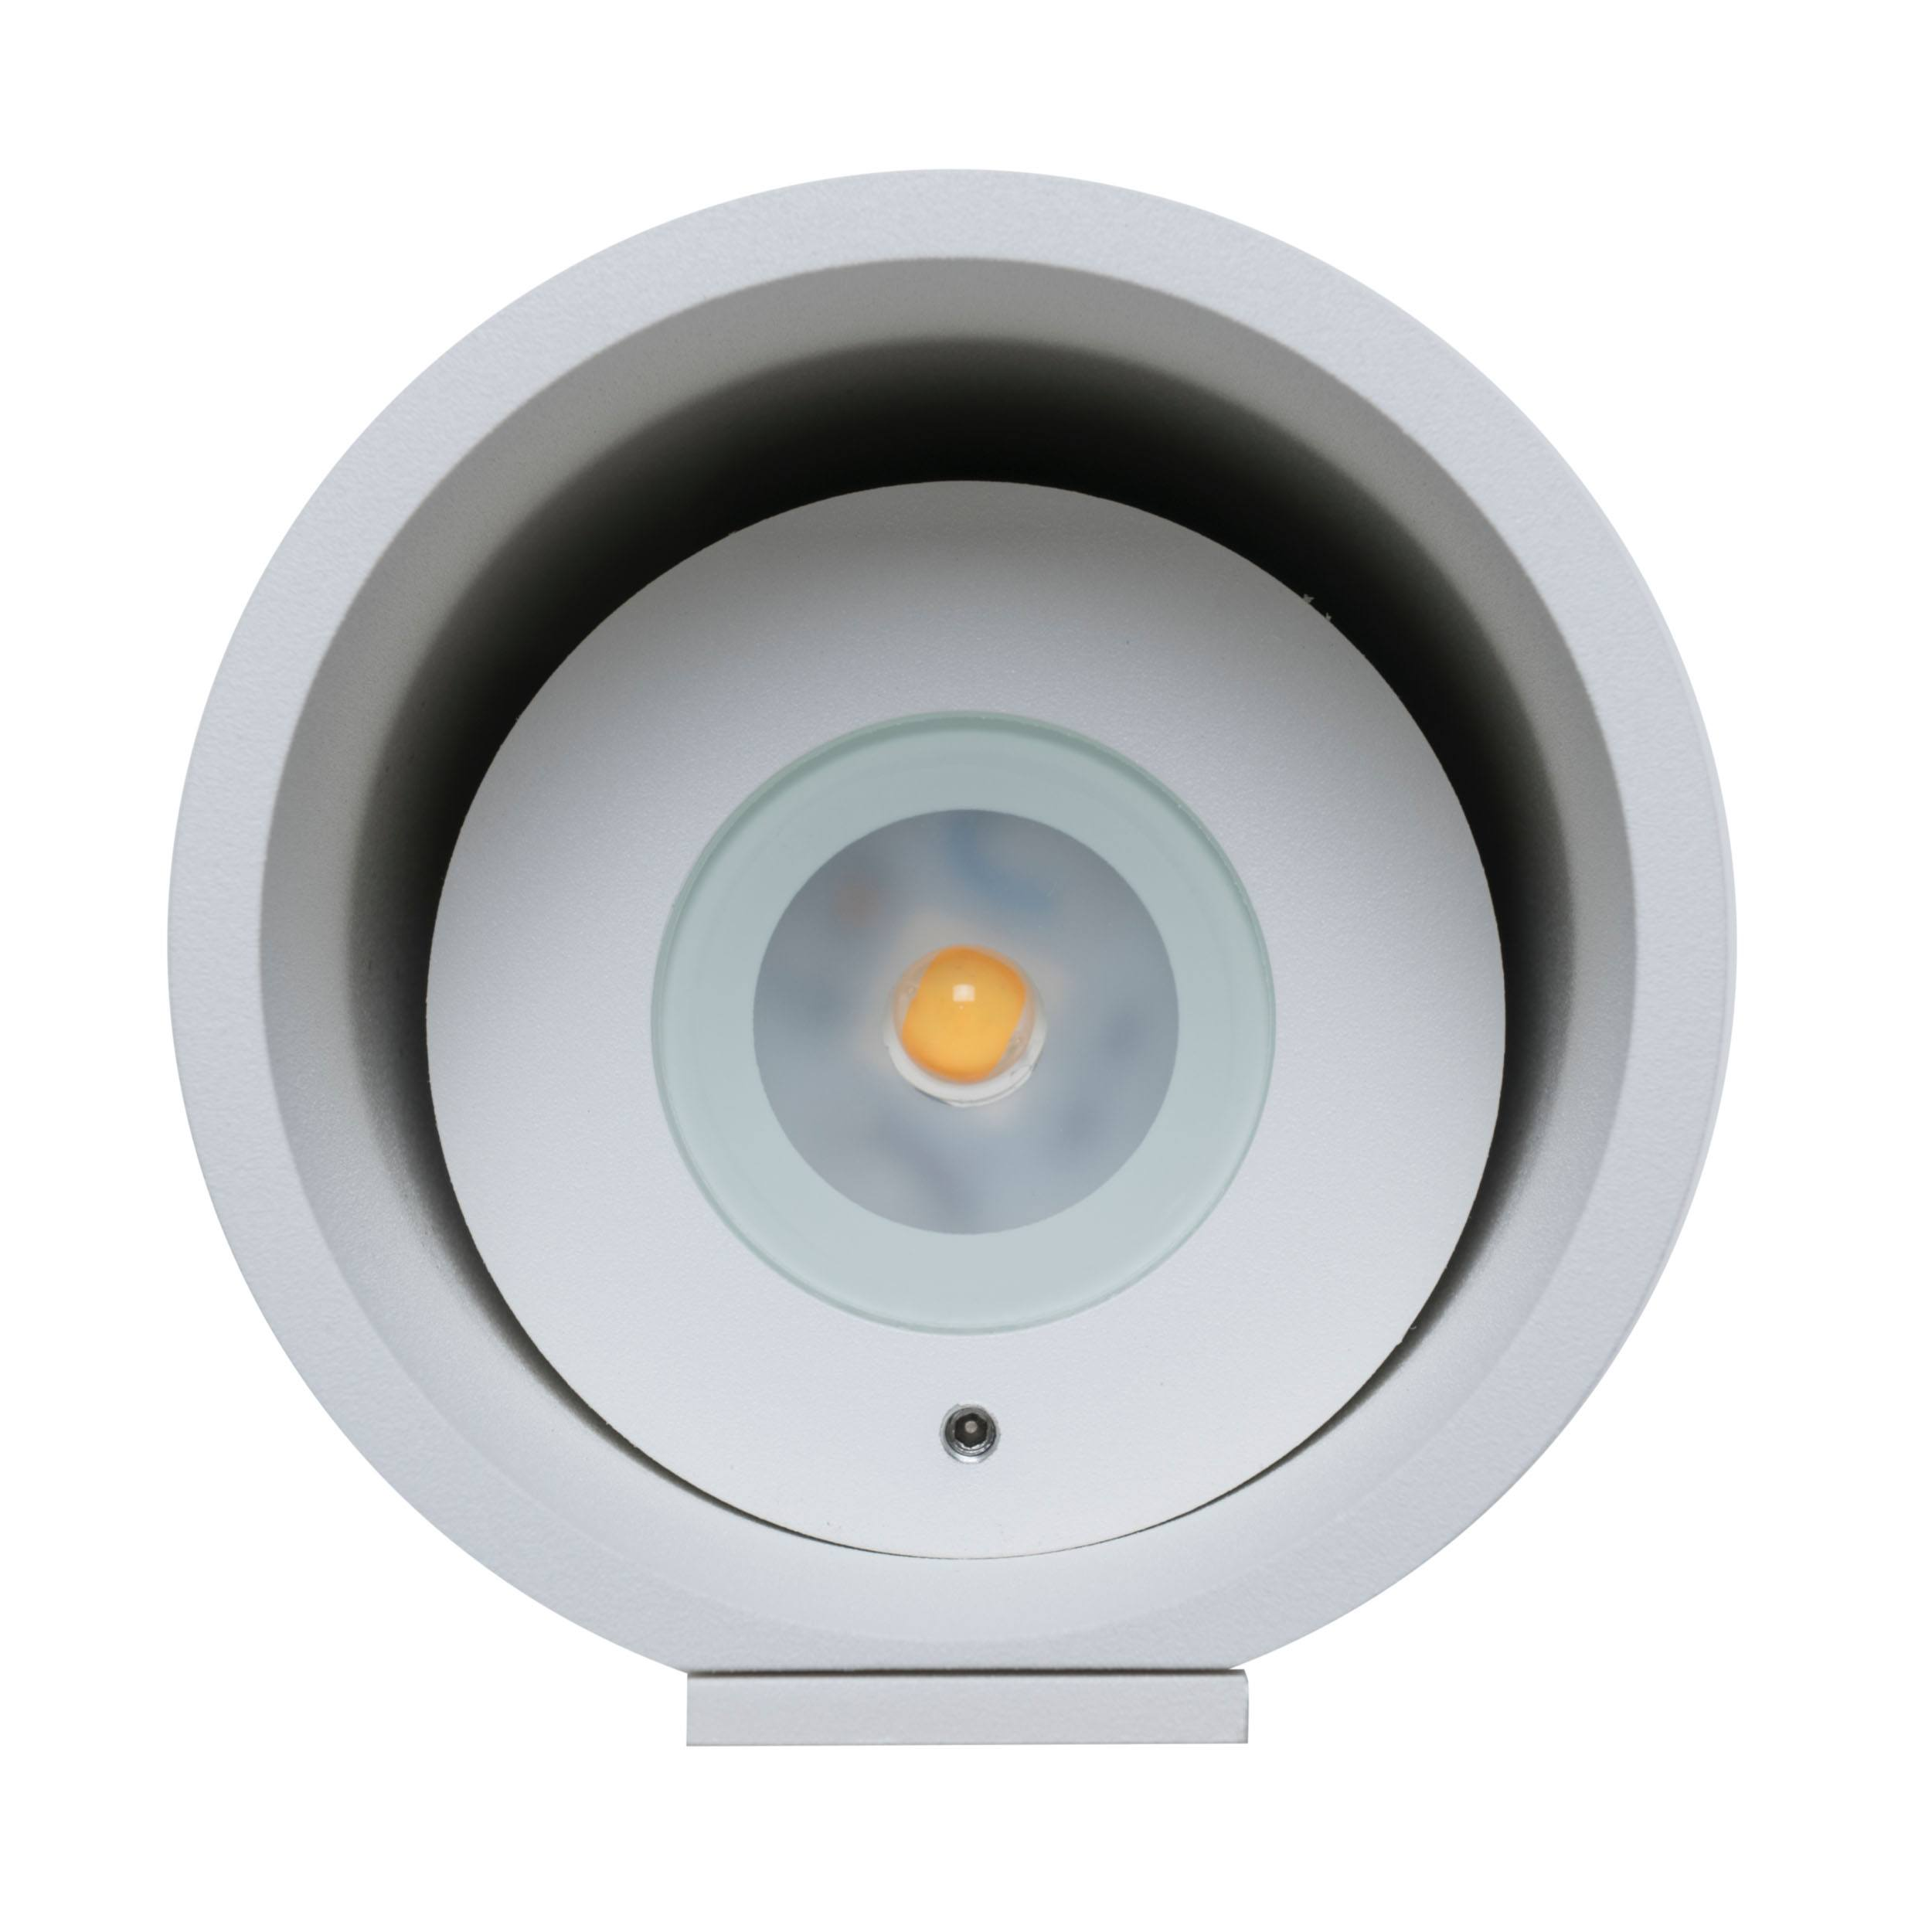 Tubo In- und Outdoor LED Wandleuchte